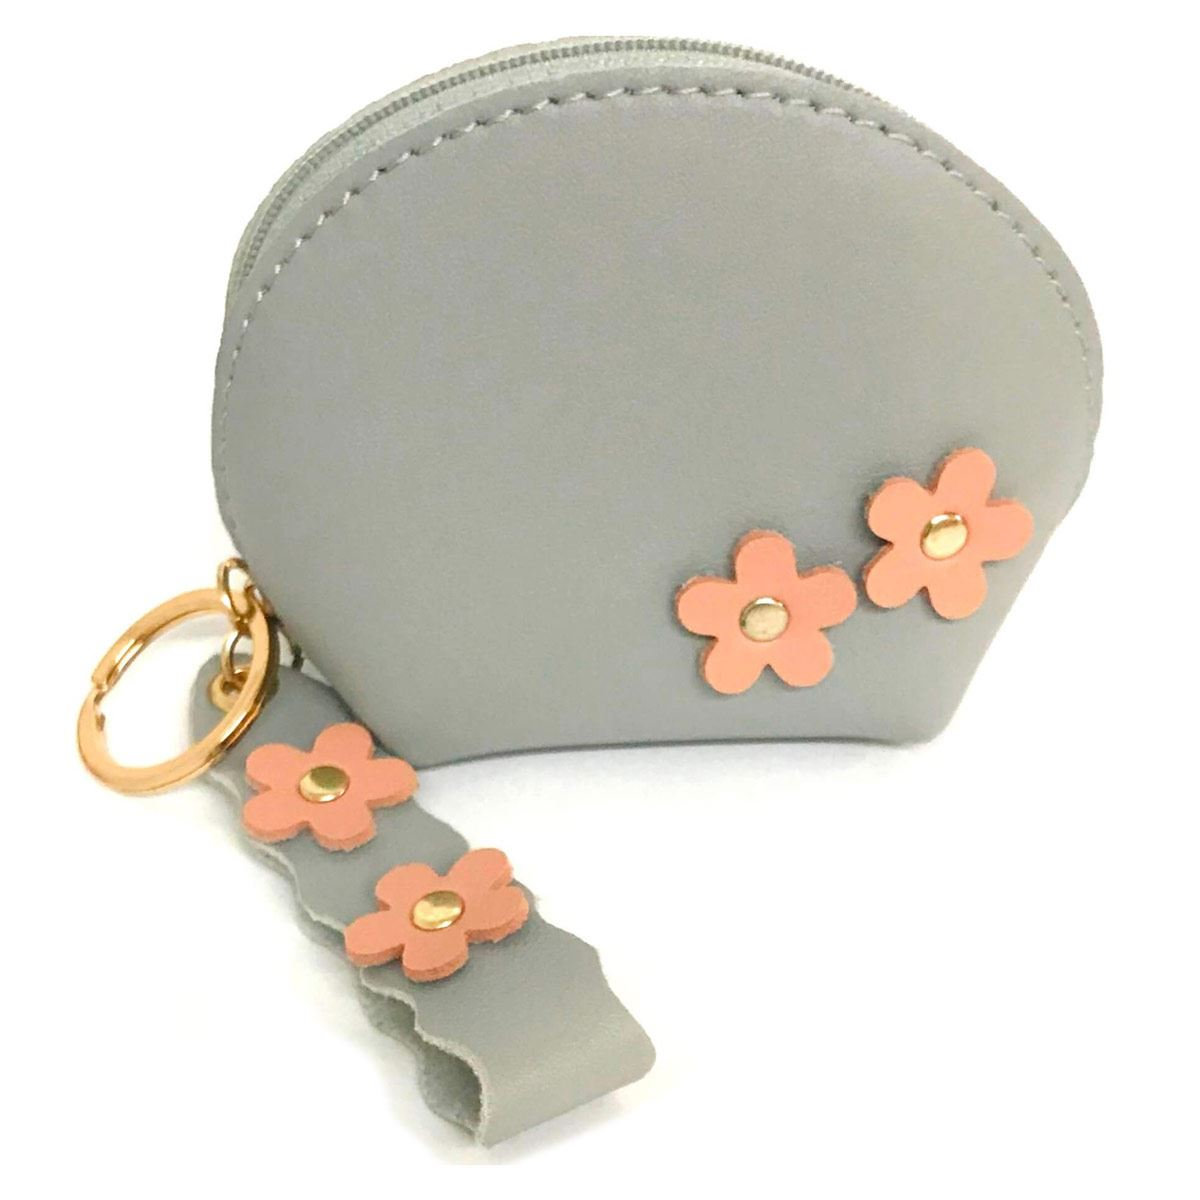 Cartera Mujer 261139 Phi By Philosophy Jr